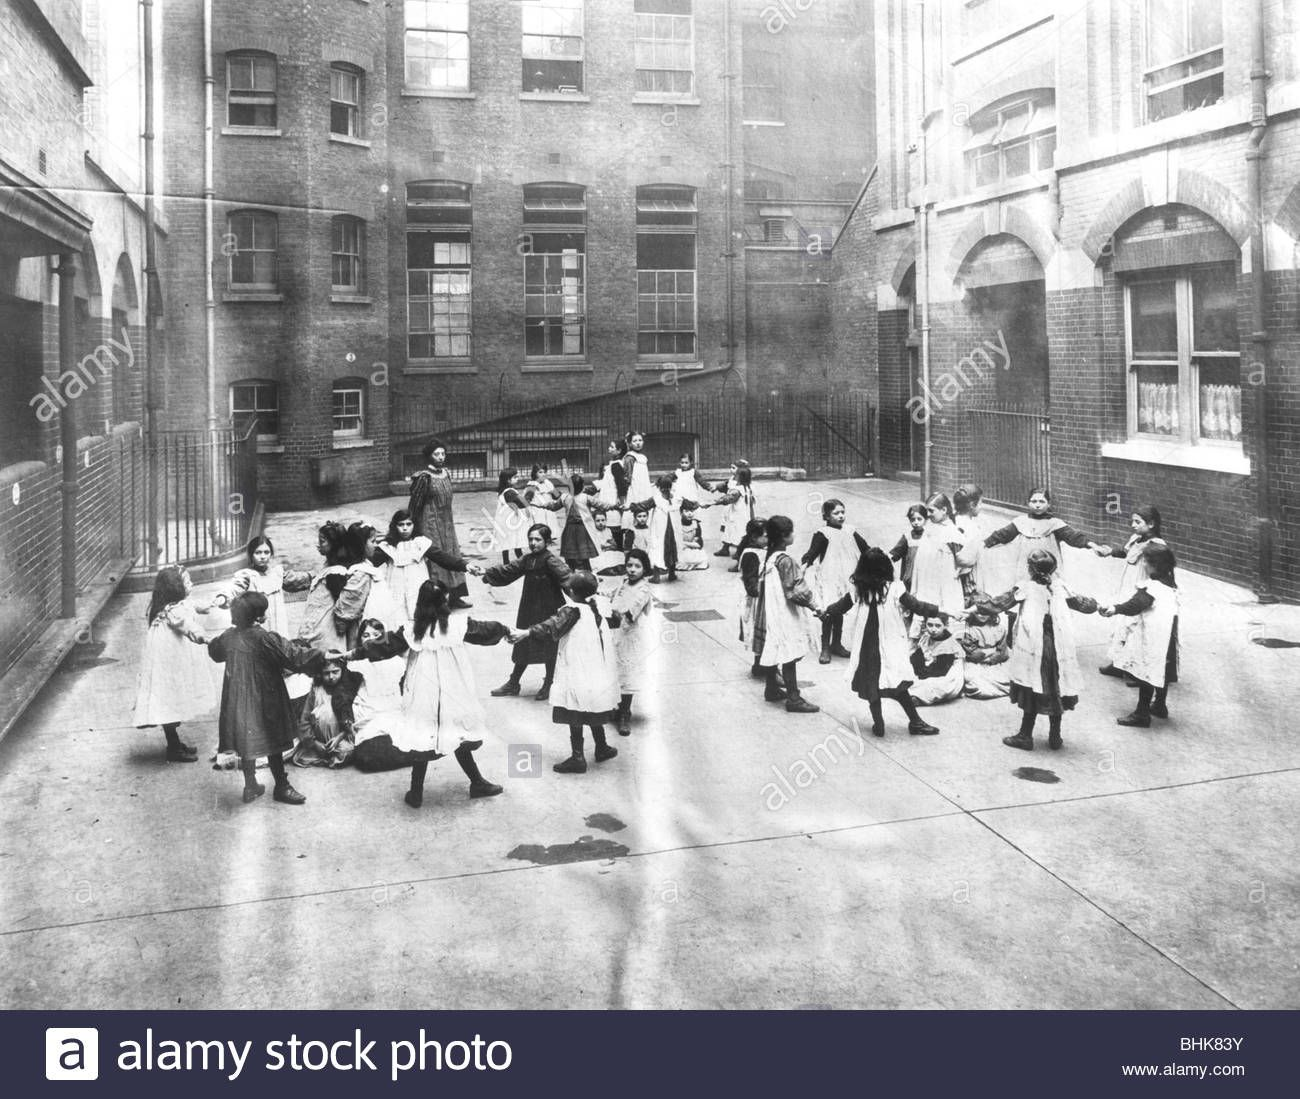 Download this stock image: Girls at the Jewish Free School